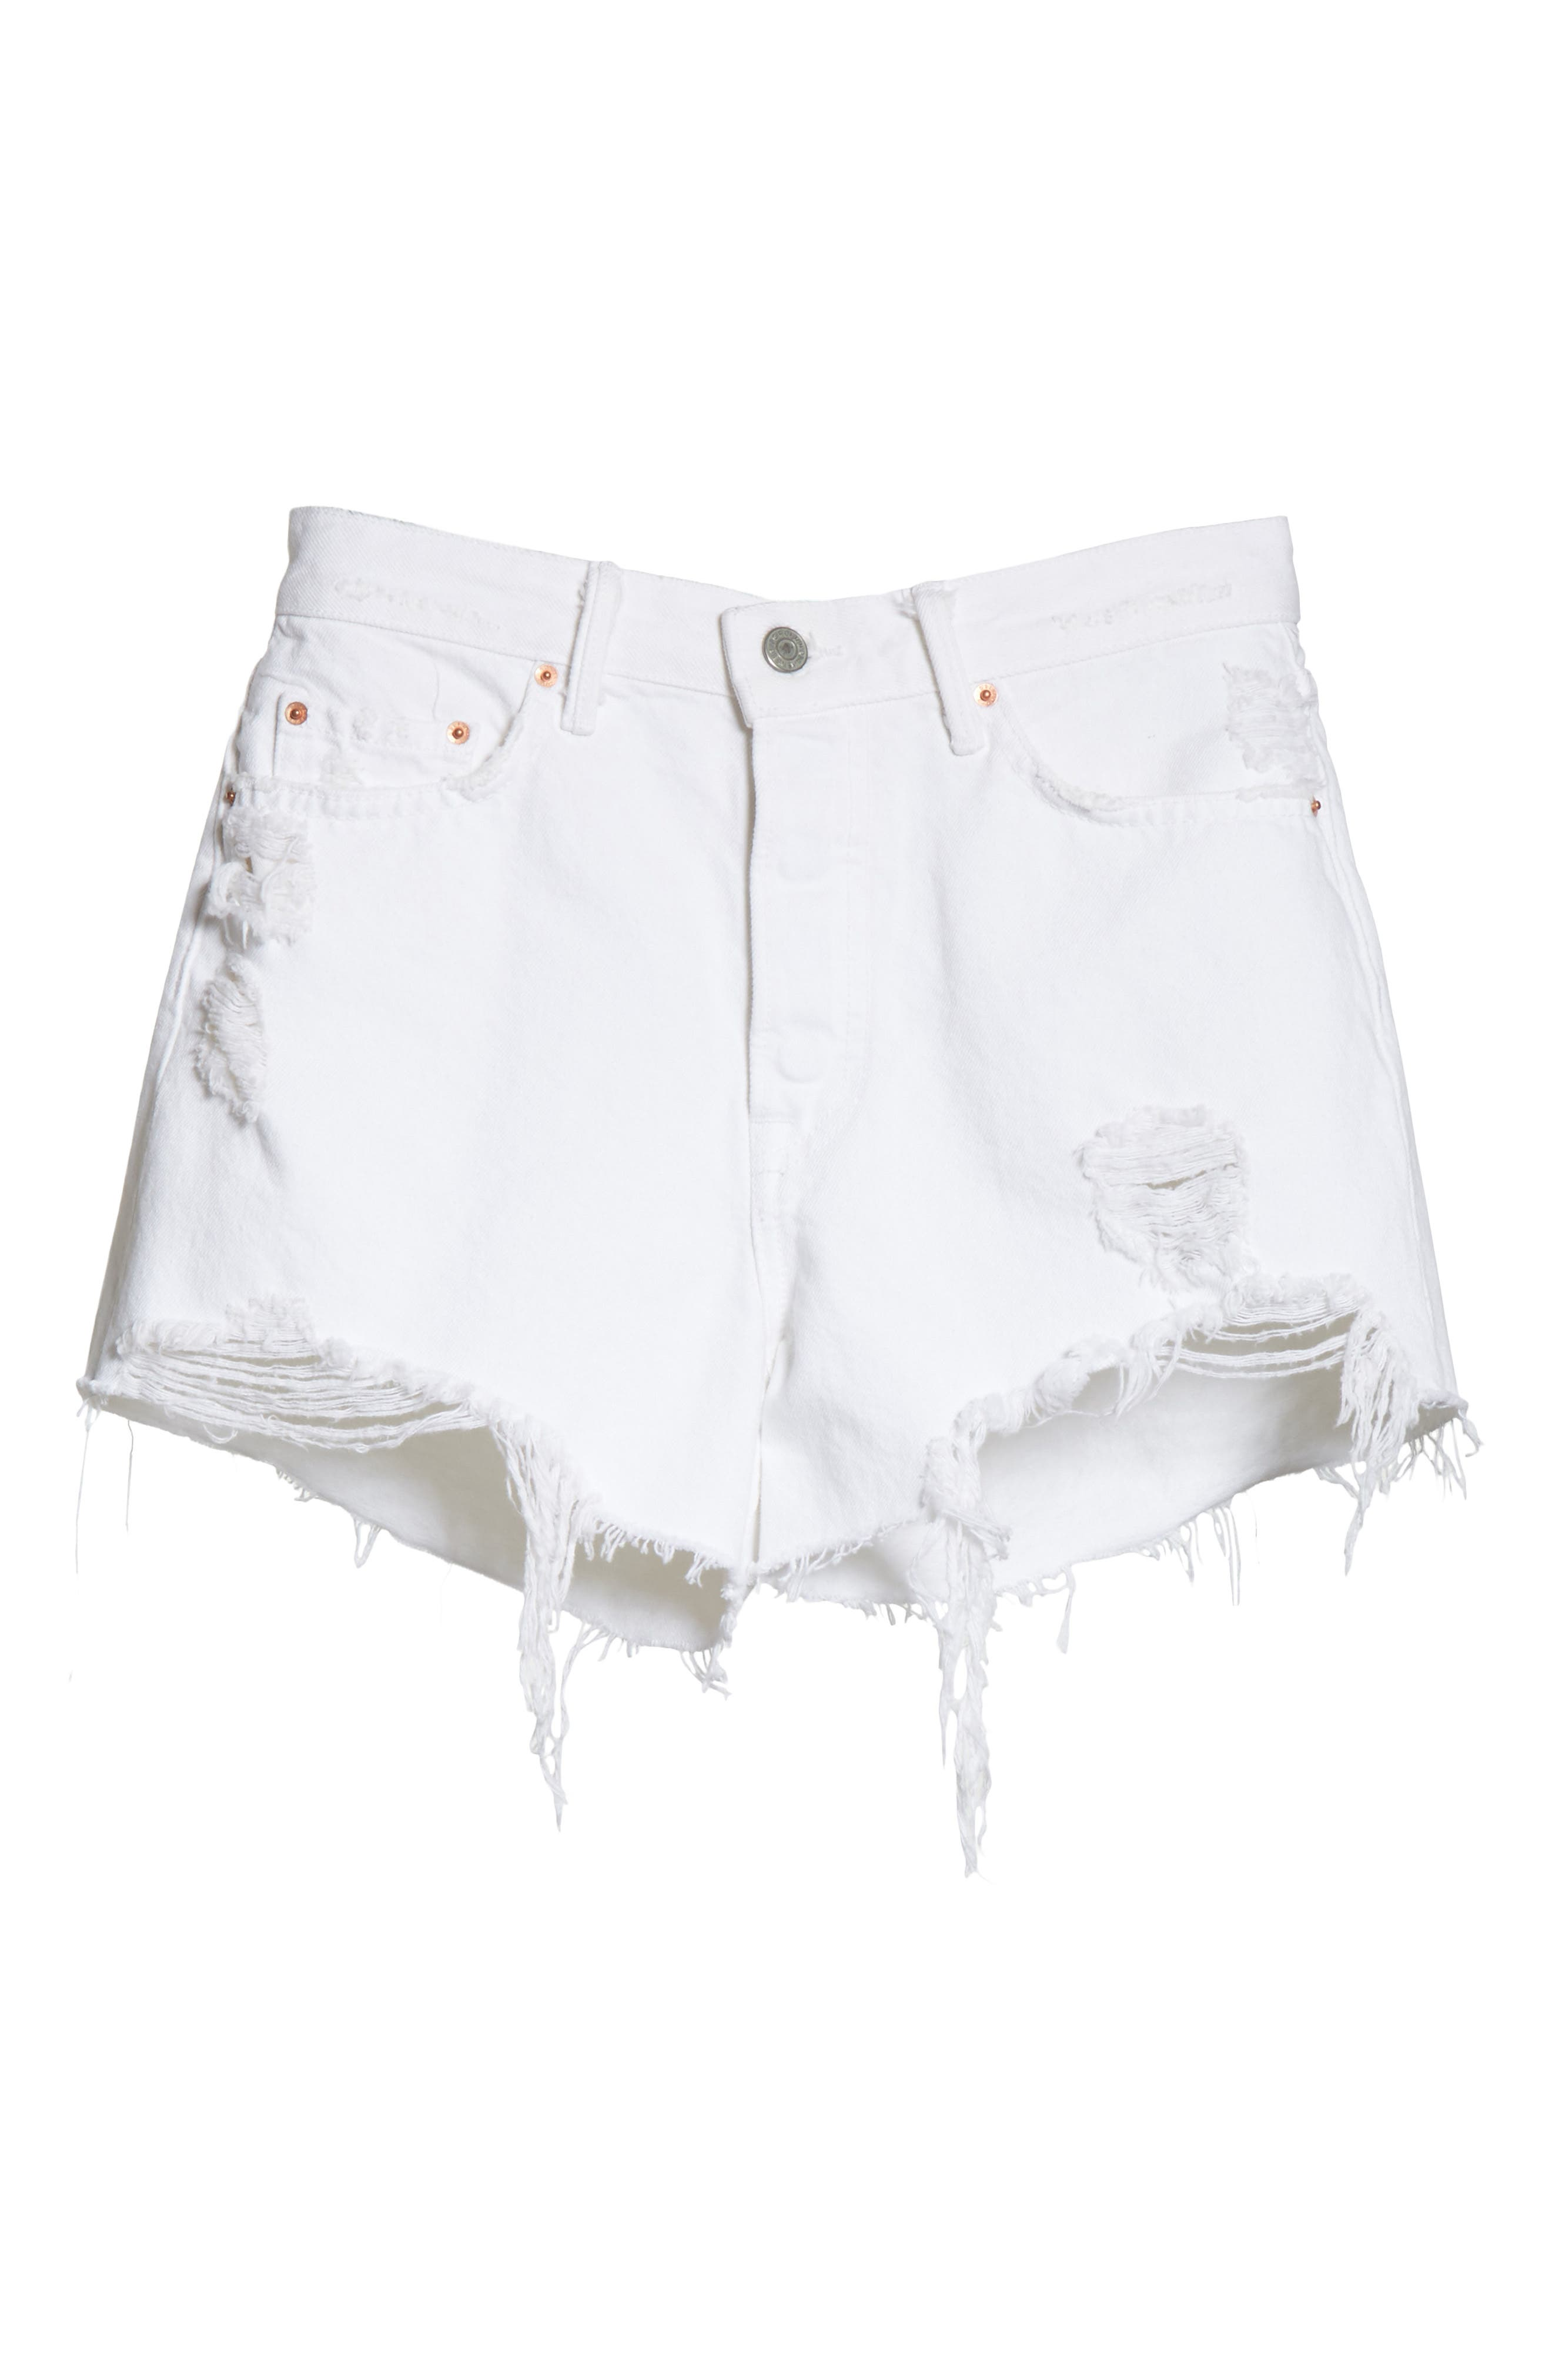 Helena High Waist Denim Shorts,                             Alternate thumbnail 7, color,                             Pierre